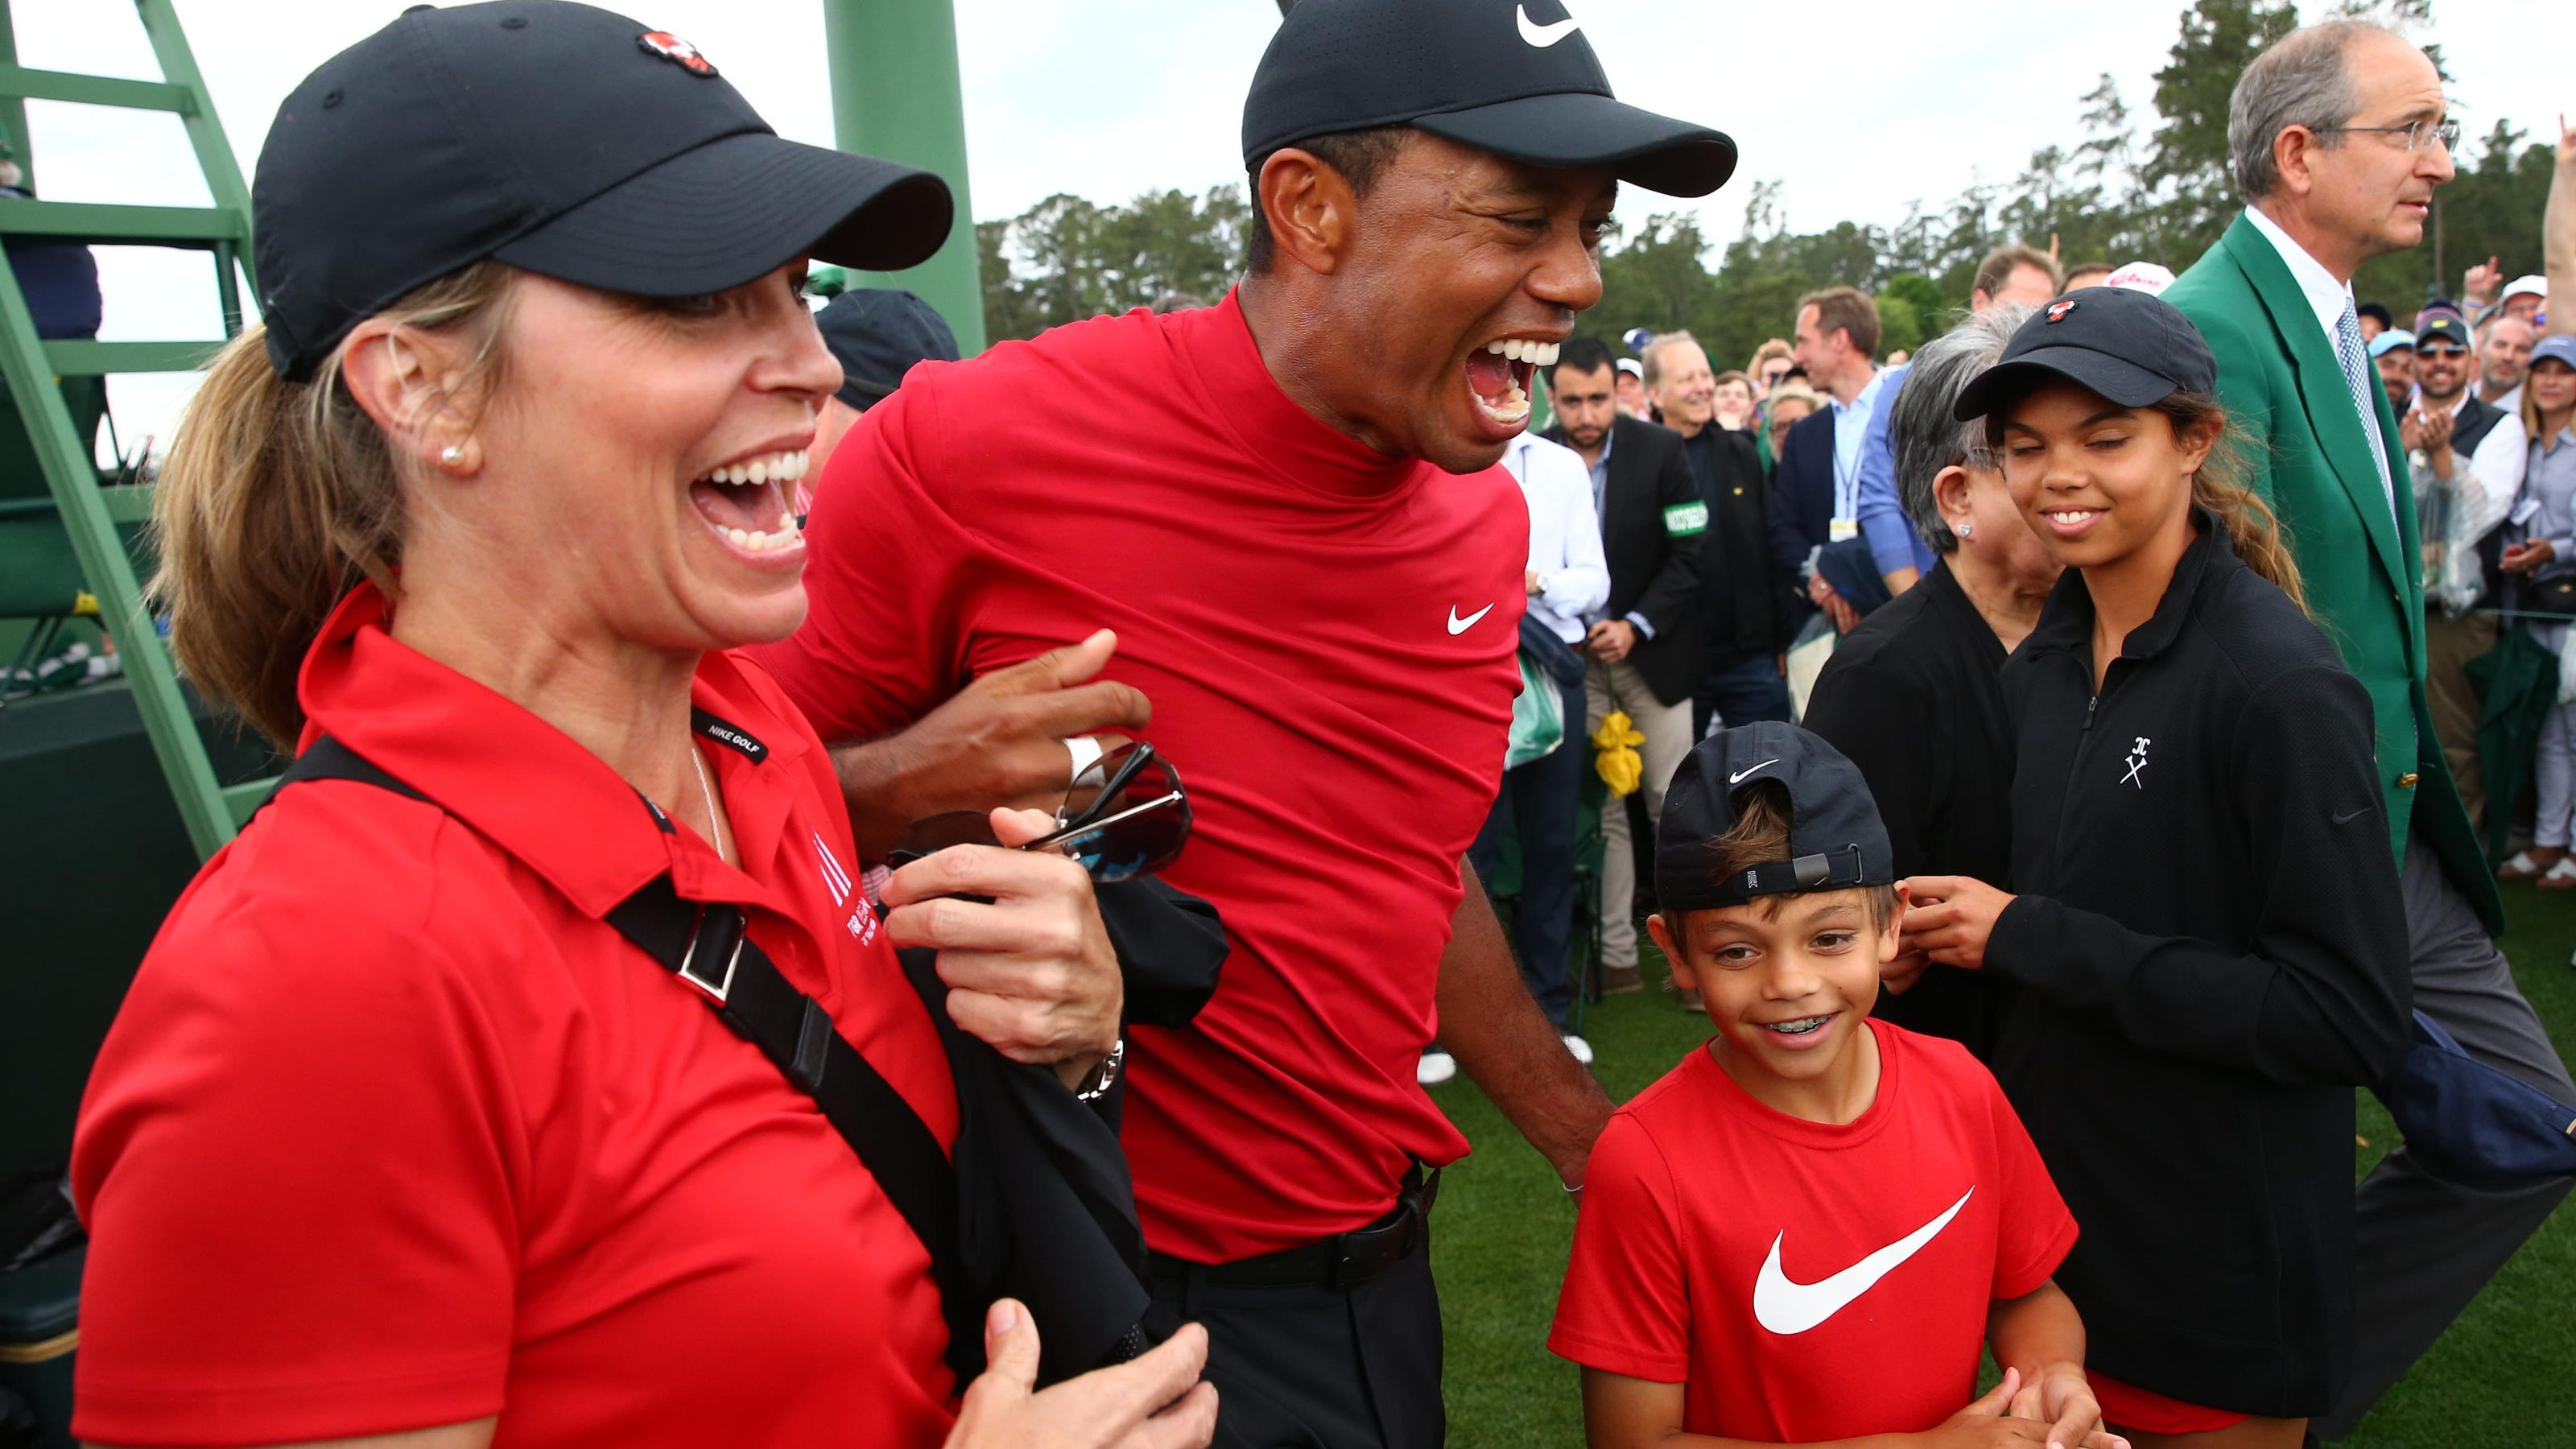 Tiger Woods Bringing Son Charlie Into Limelight At PNC